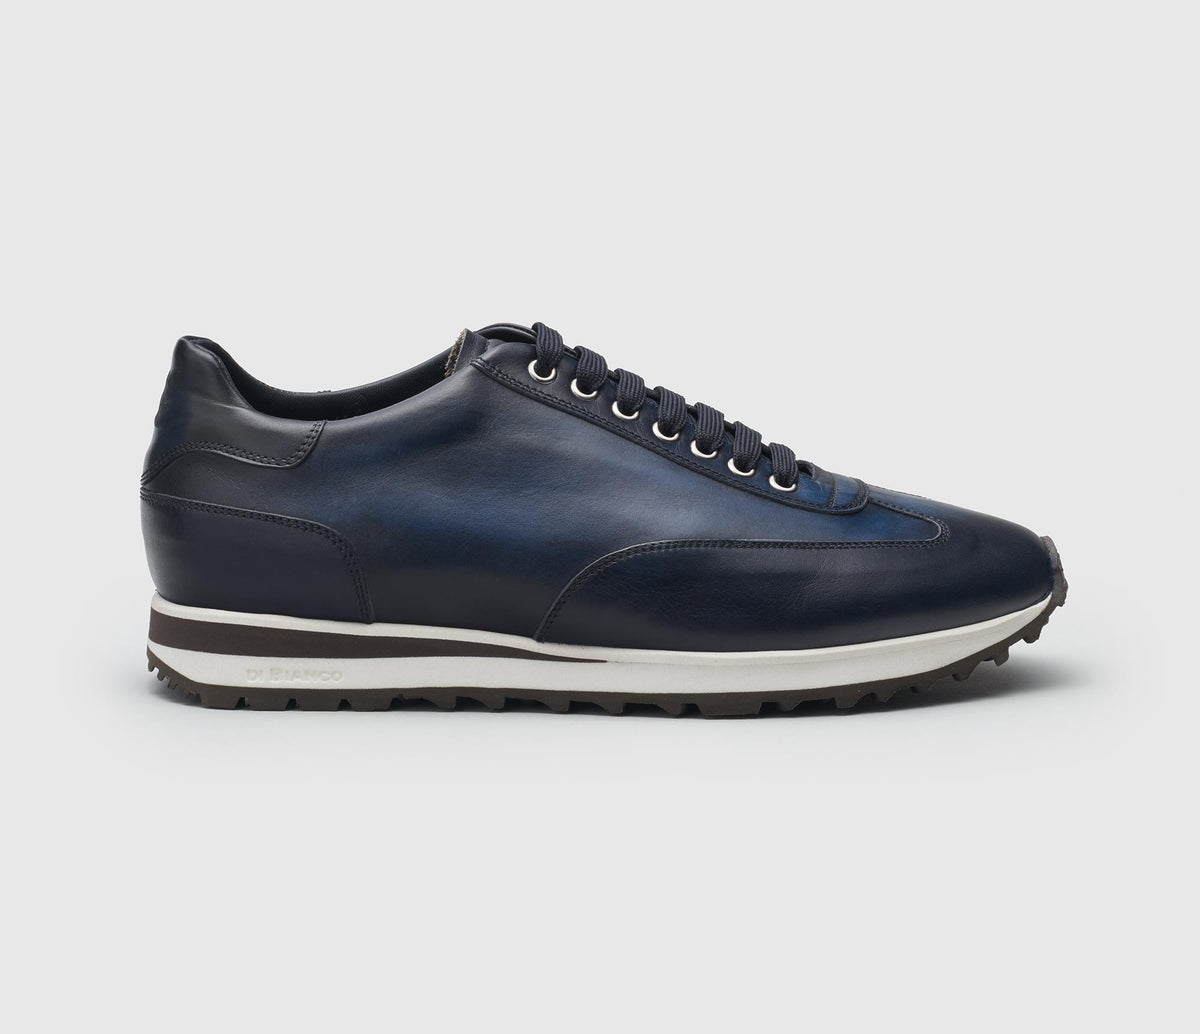 Trieste Leather Sneaker in Navy